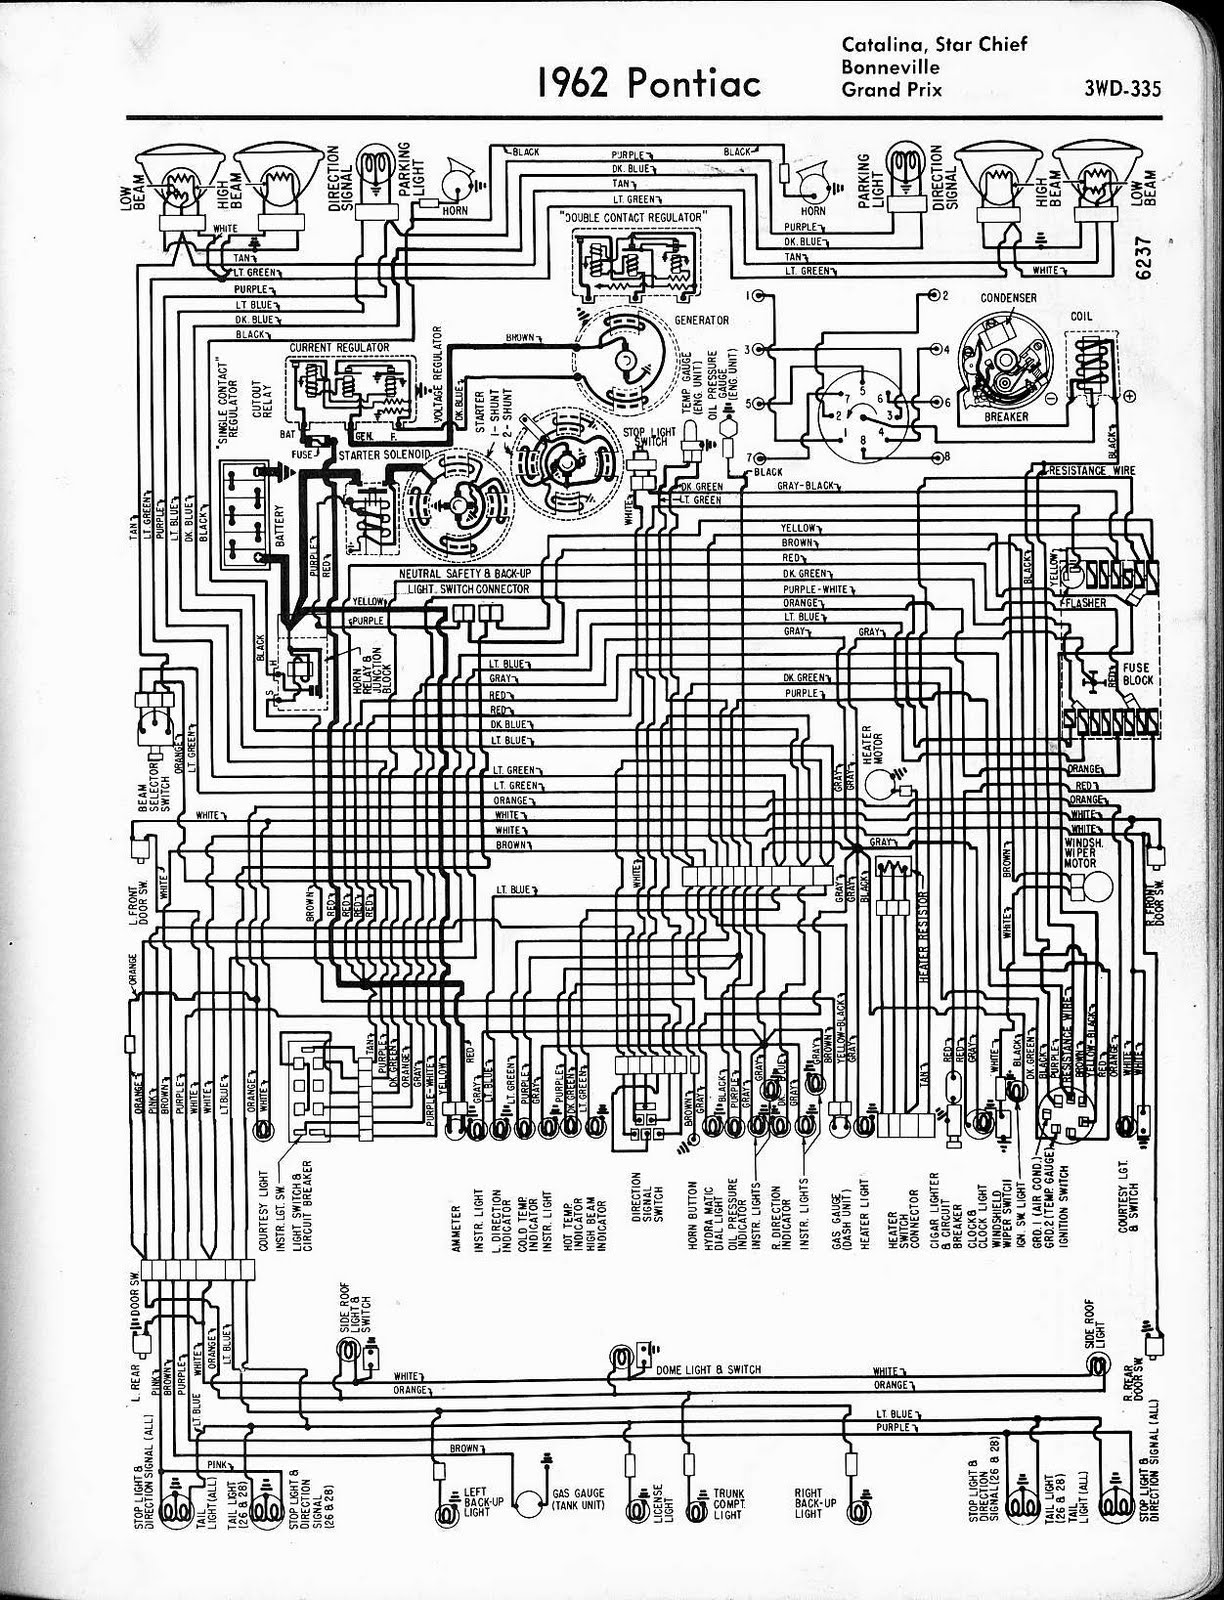 1970 pontiac lemans wiring diagram books of wiring diagram u2022 rh mattersoflifecoaching co Pontiac Grand AM Wiring Diagram 1971 Pontiac Firebird Wiring Diagram